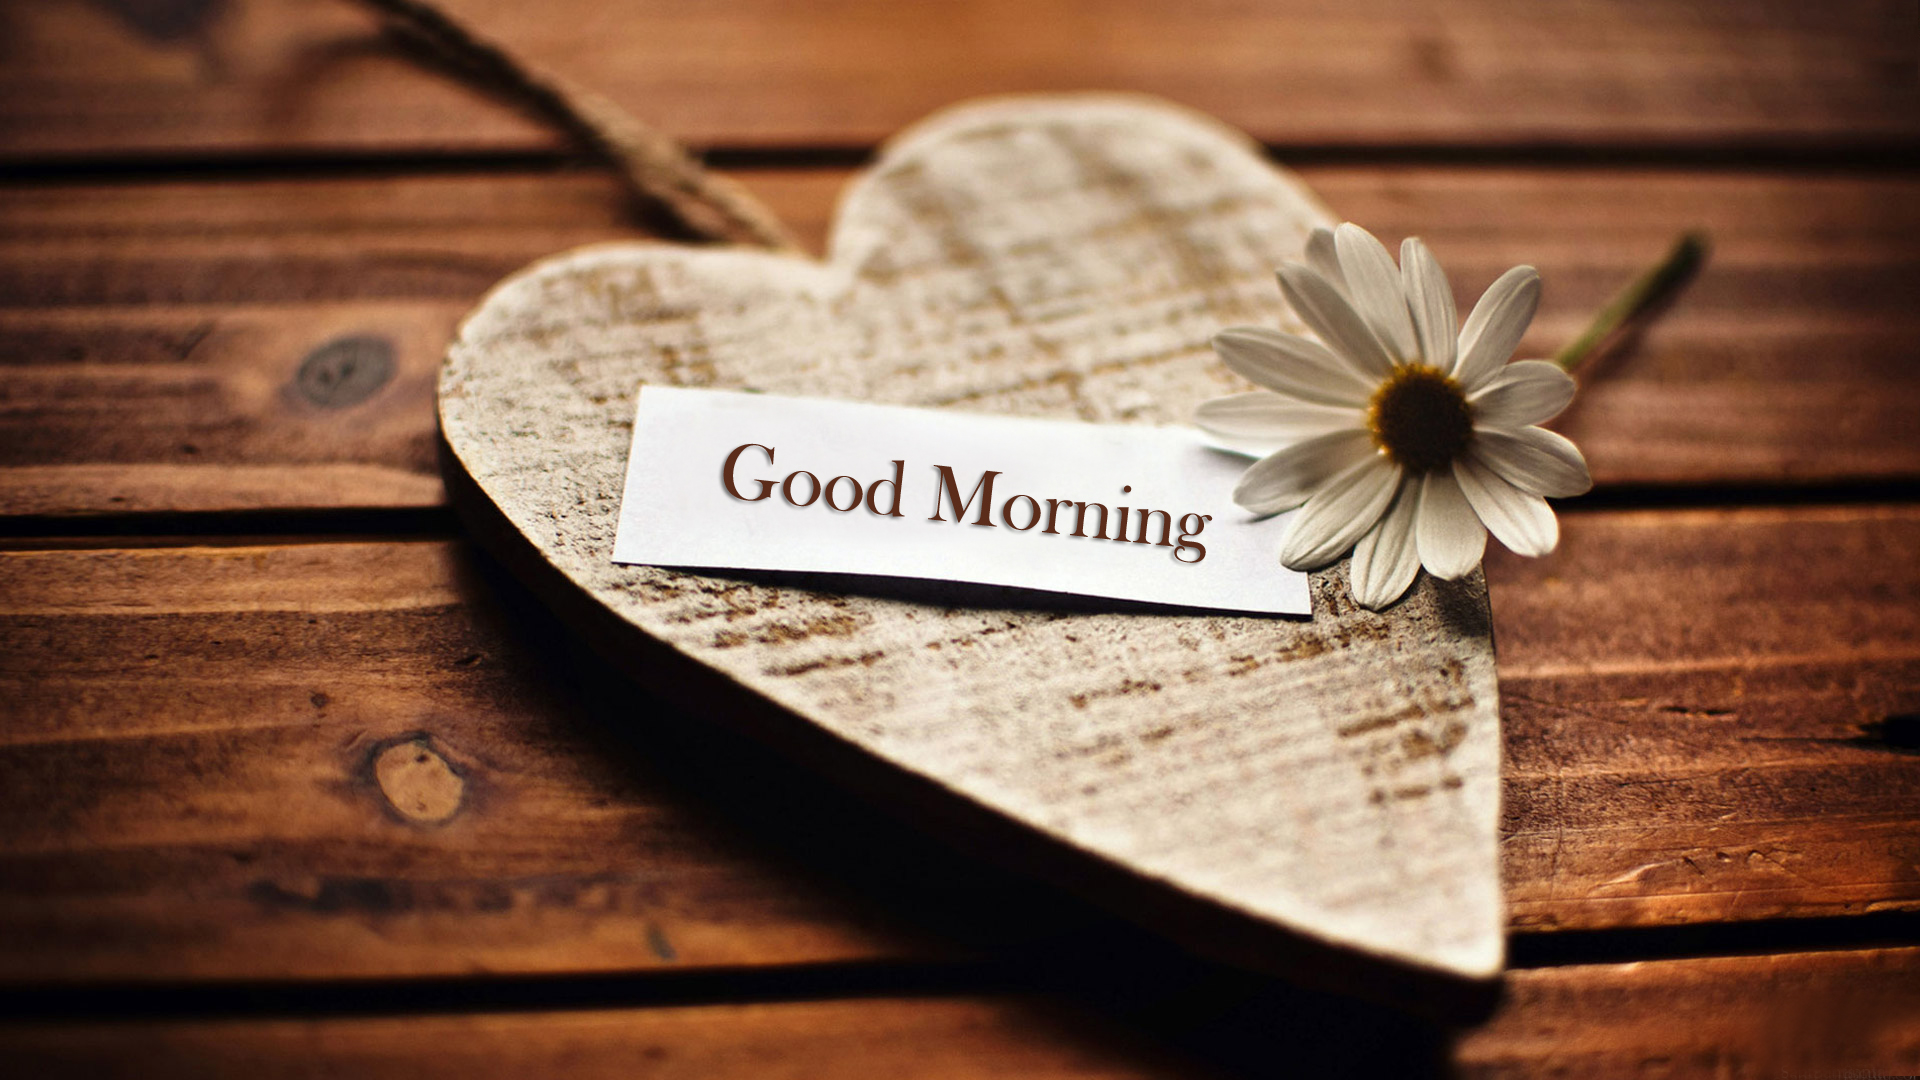 Good Morning Love Images Wallpaper : Good Morning quotes, images, wishes,pics, SMS, wallpapers